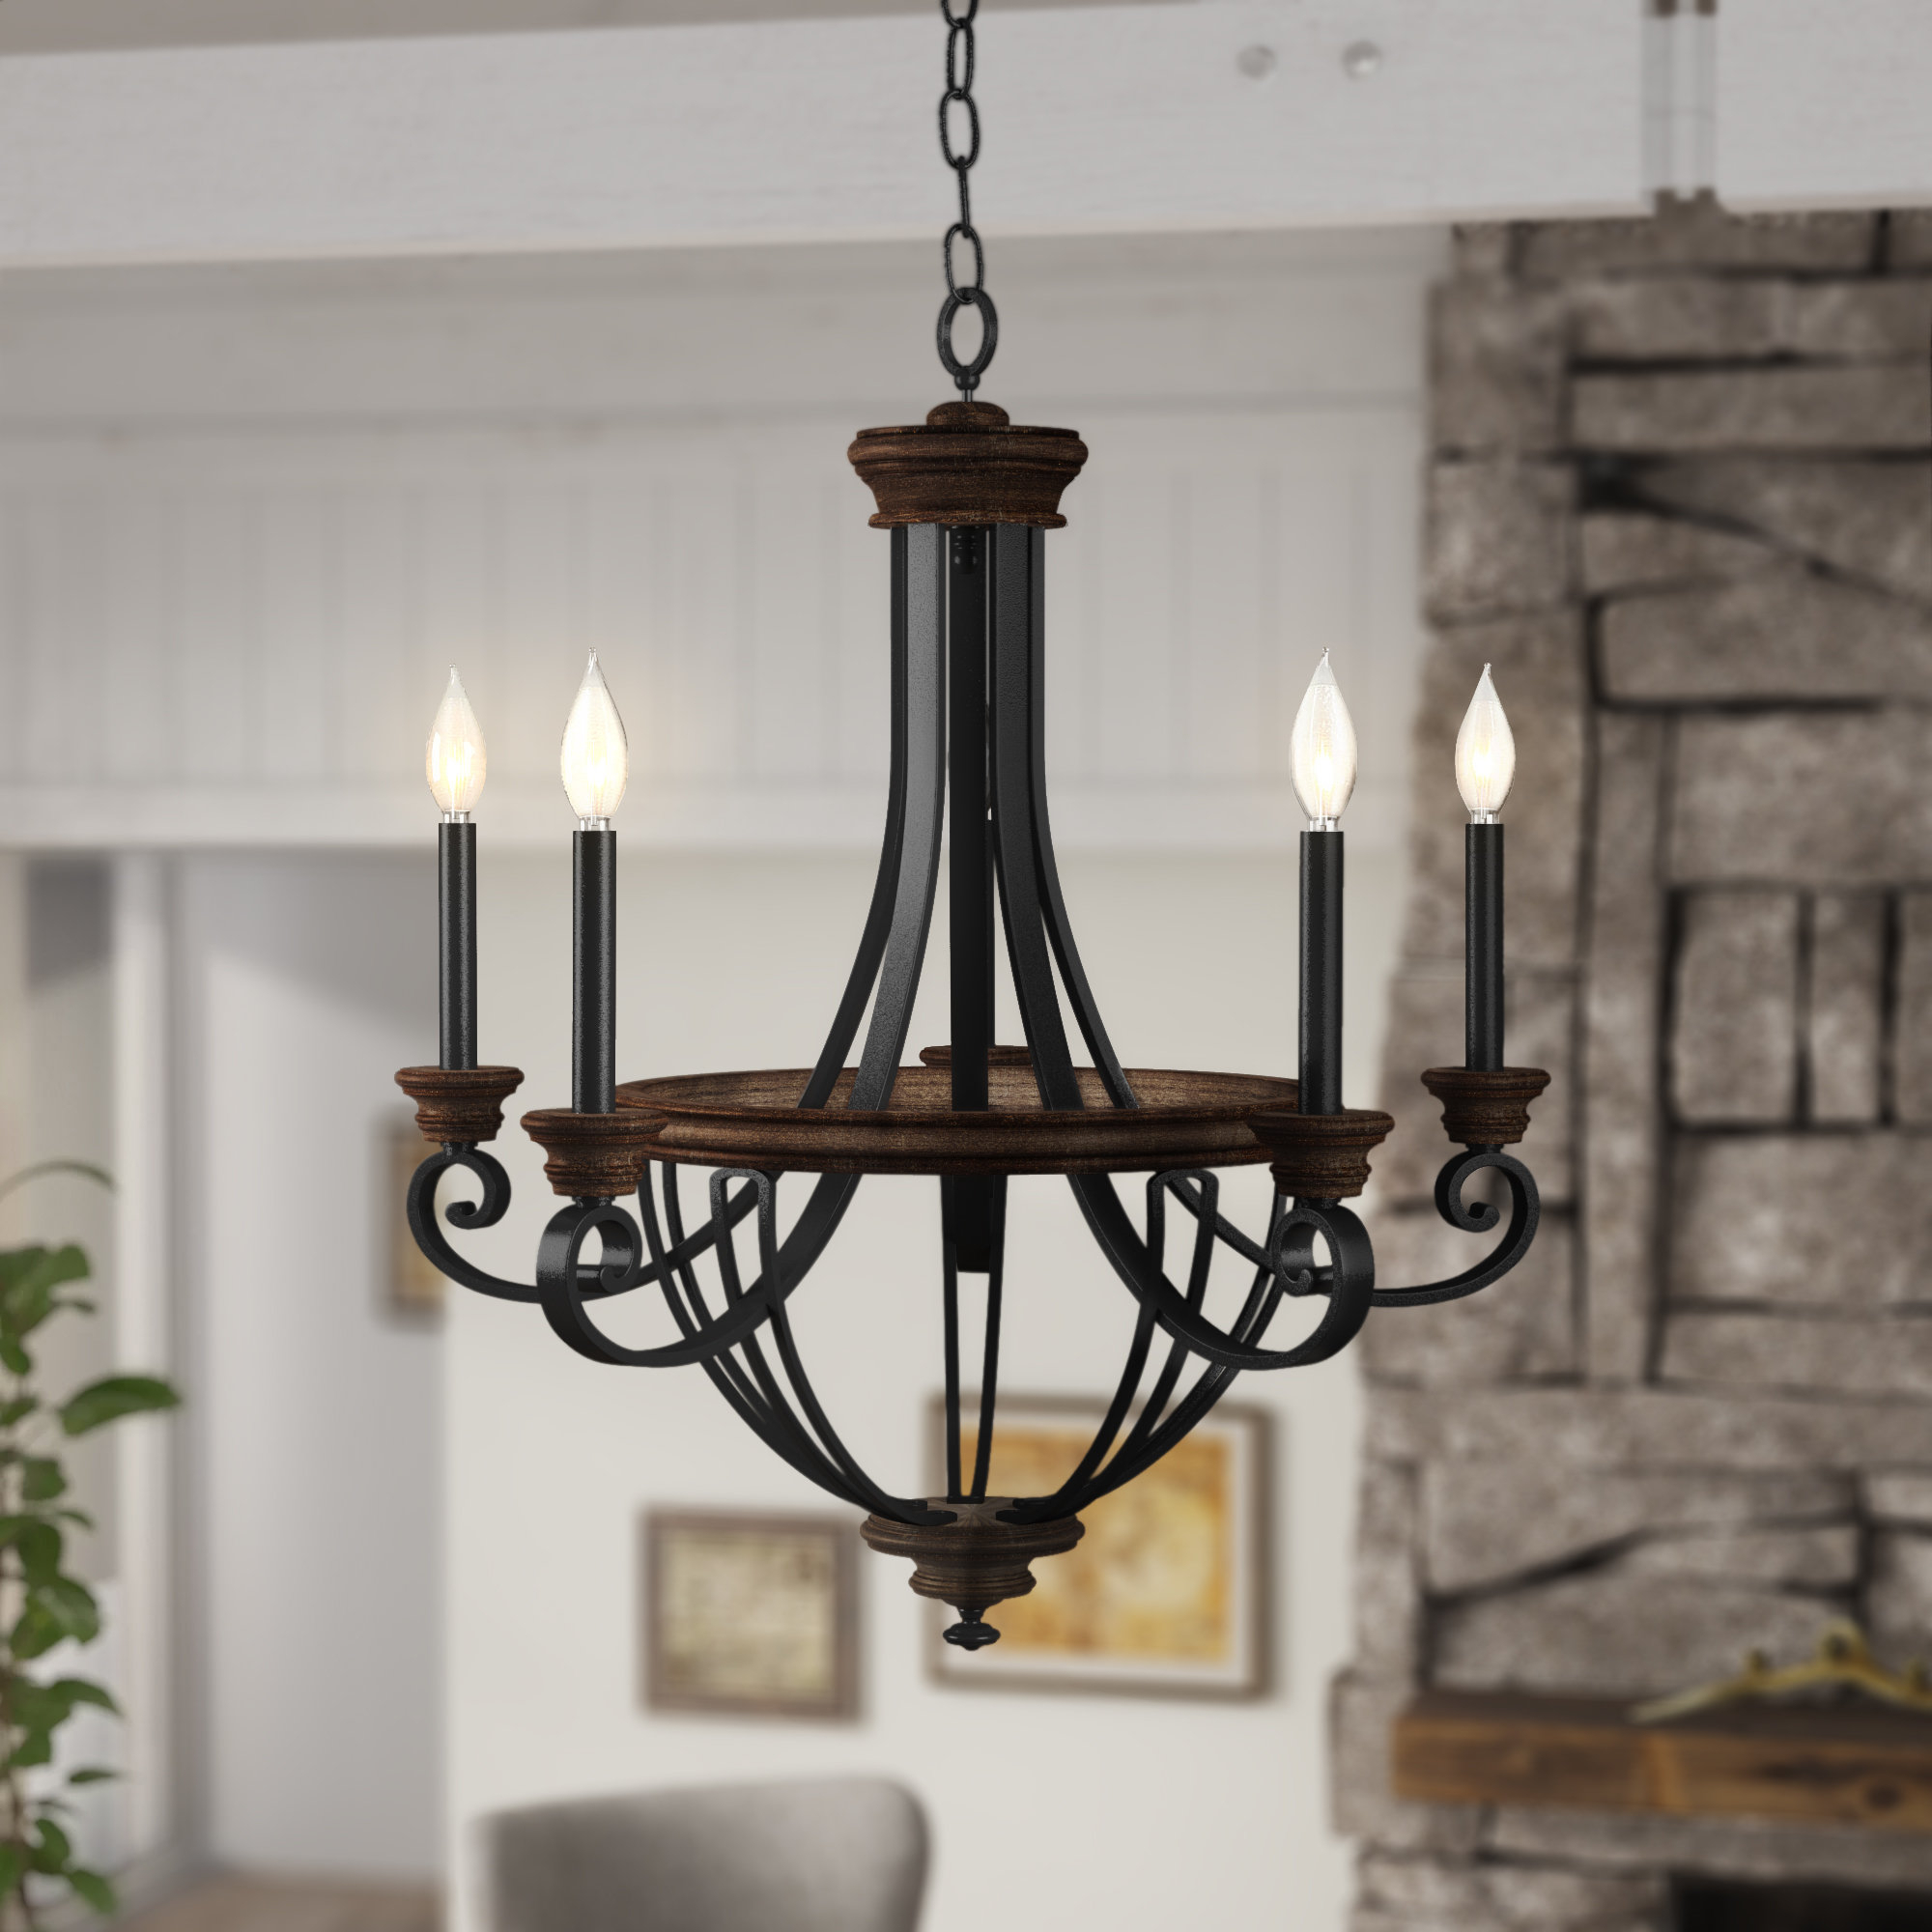 Most Recent Camilla 9 Light Candle Style Chandeliers Within Nanteuil 5 Light Empire Chandelier (View 13 of 25)